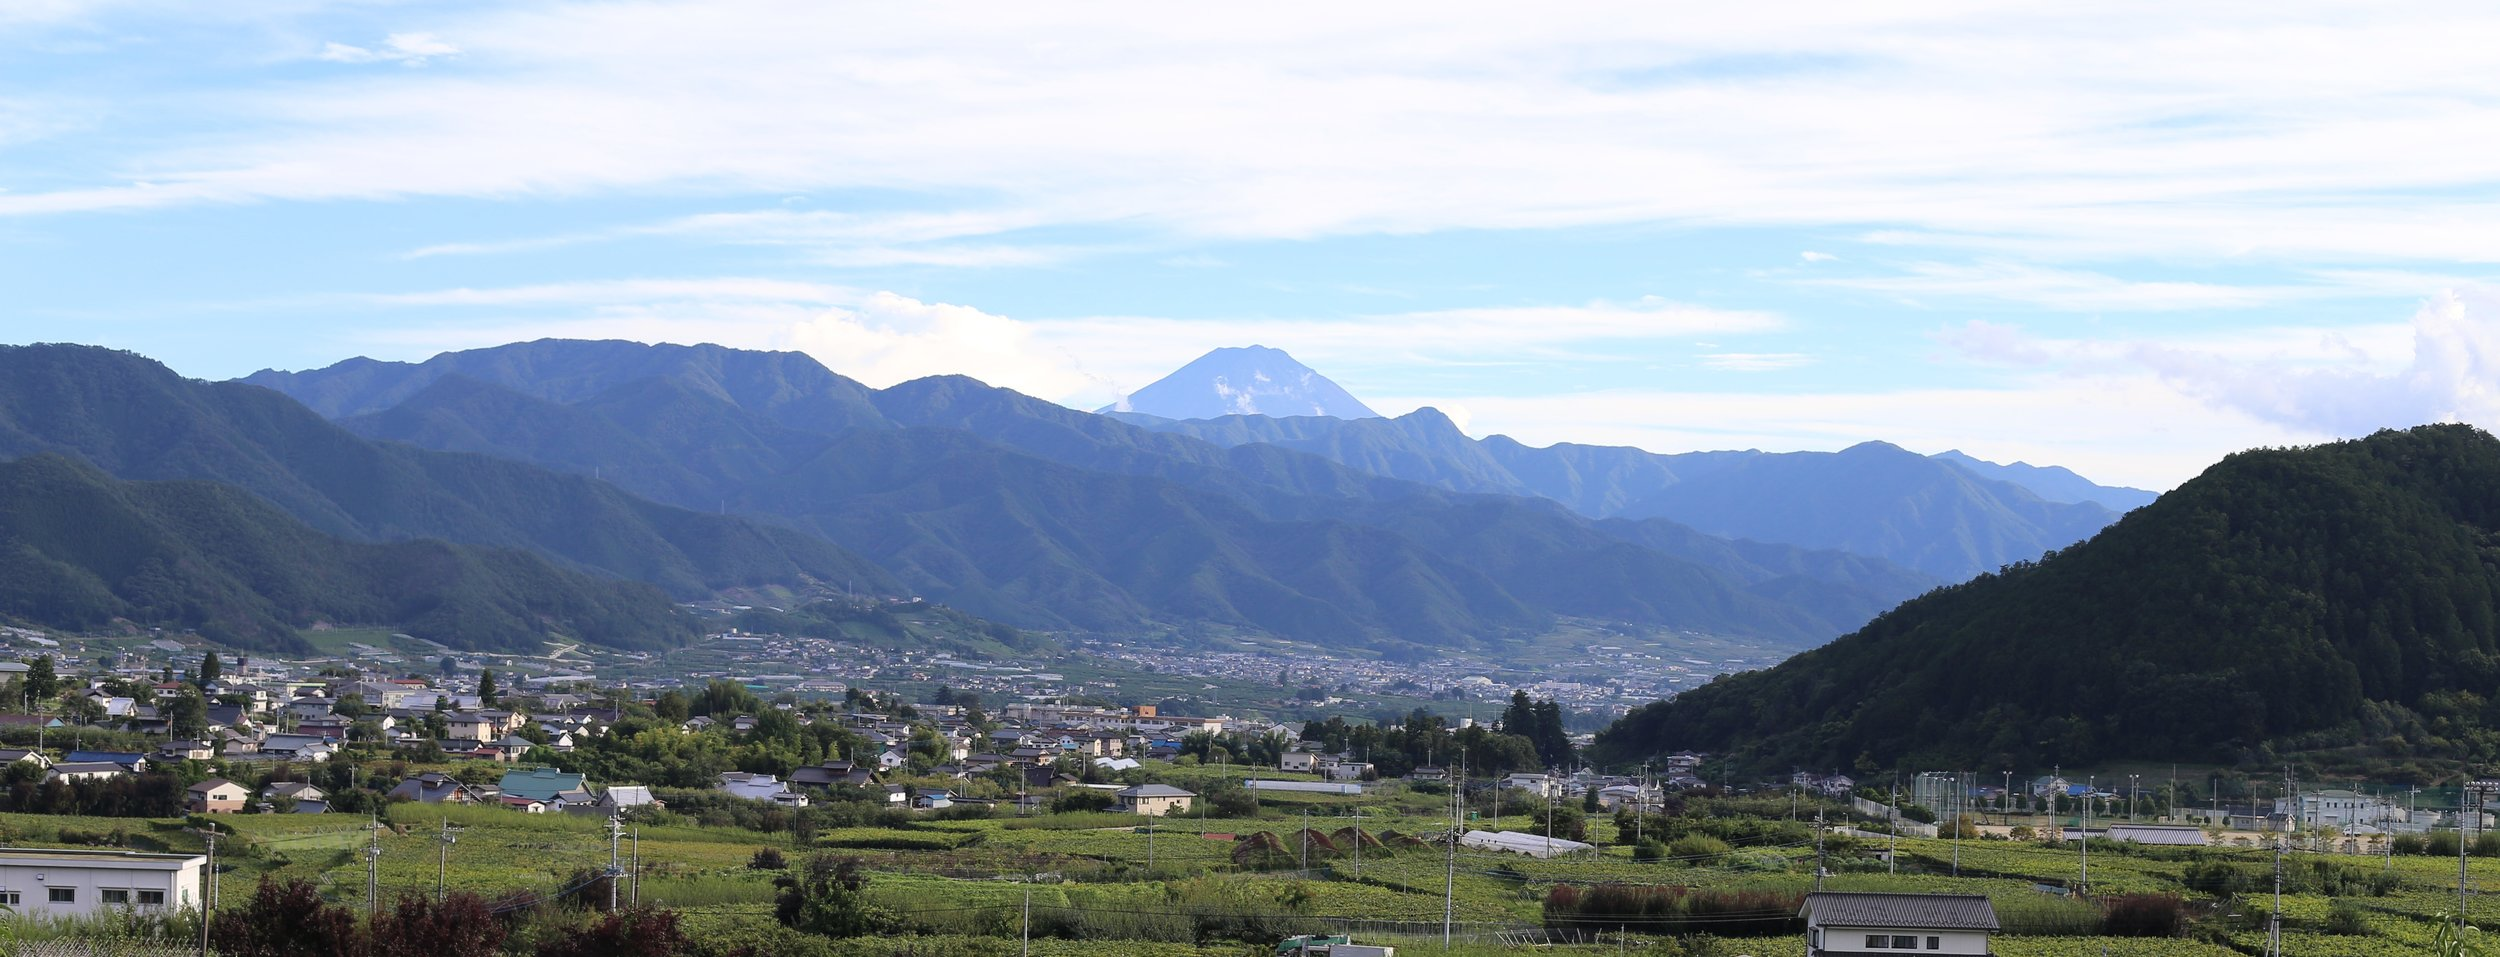 Koshu Valley_Japanese Wine Region_Valley View_Looking South to Mt Fuji.JPG